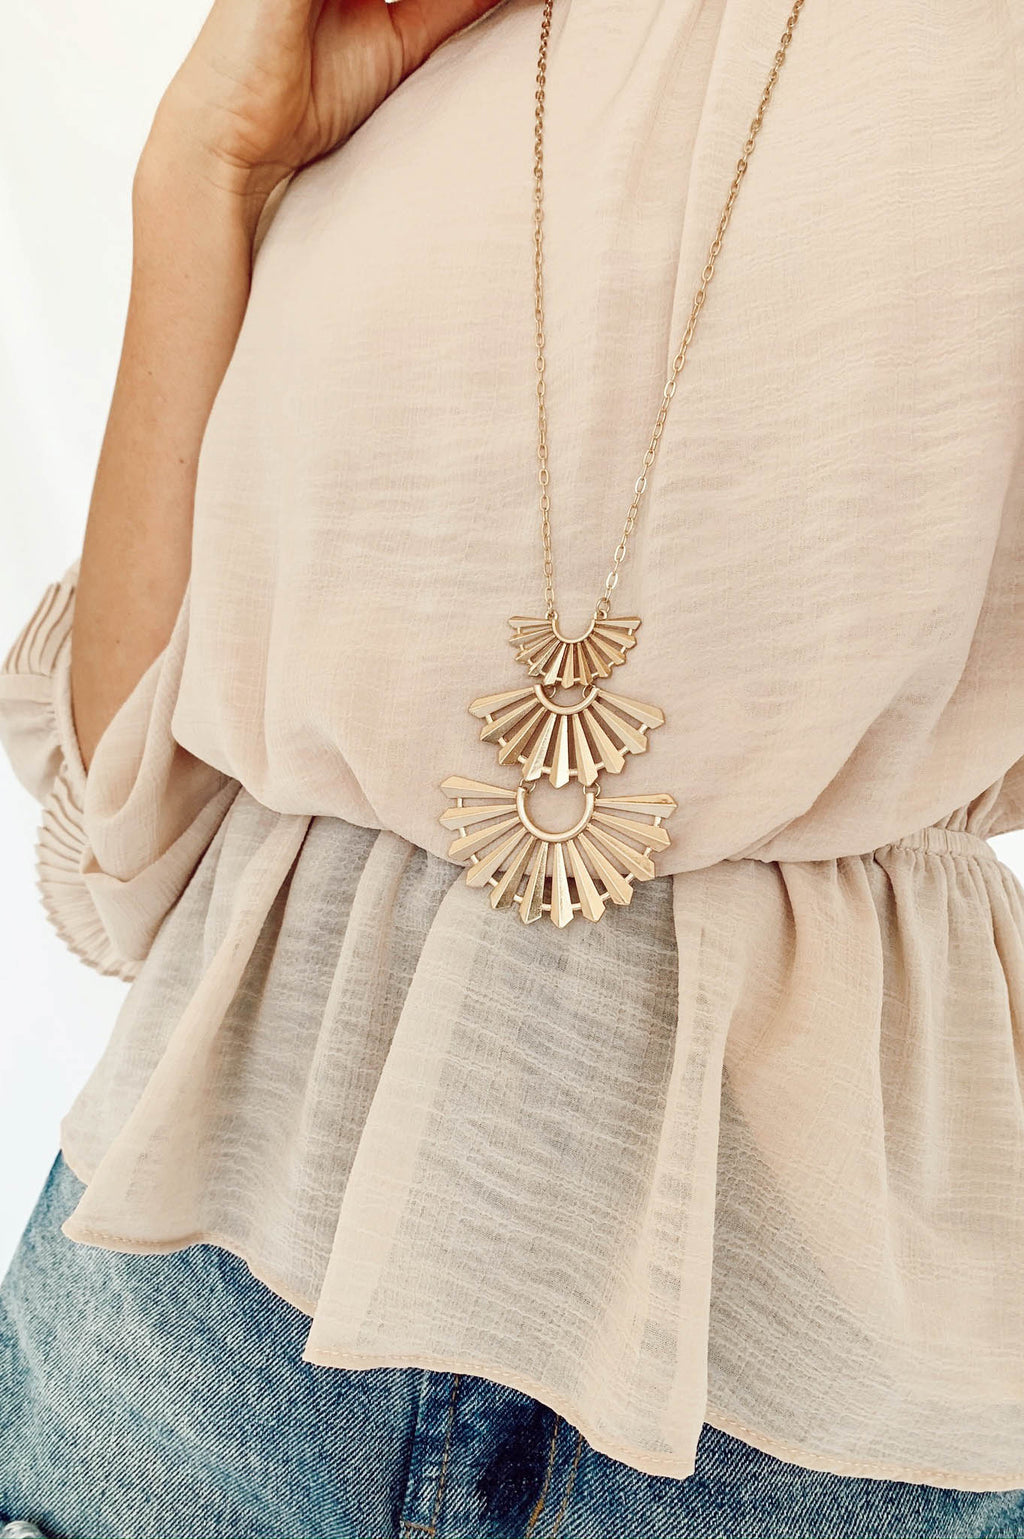 Easy Breezy Necklace